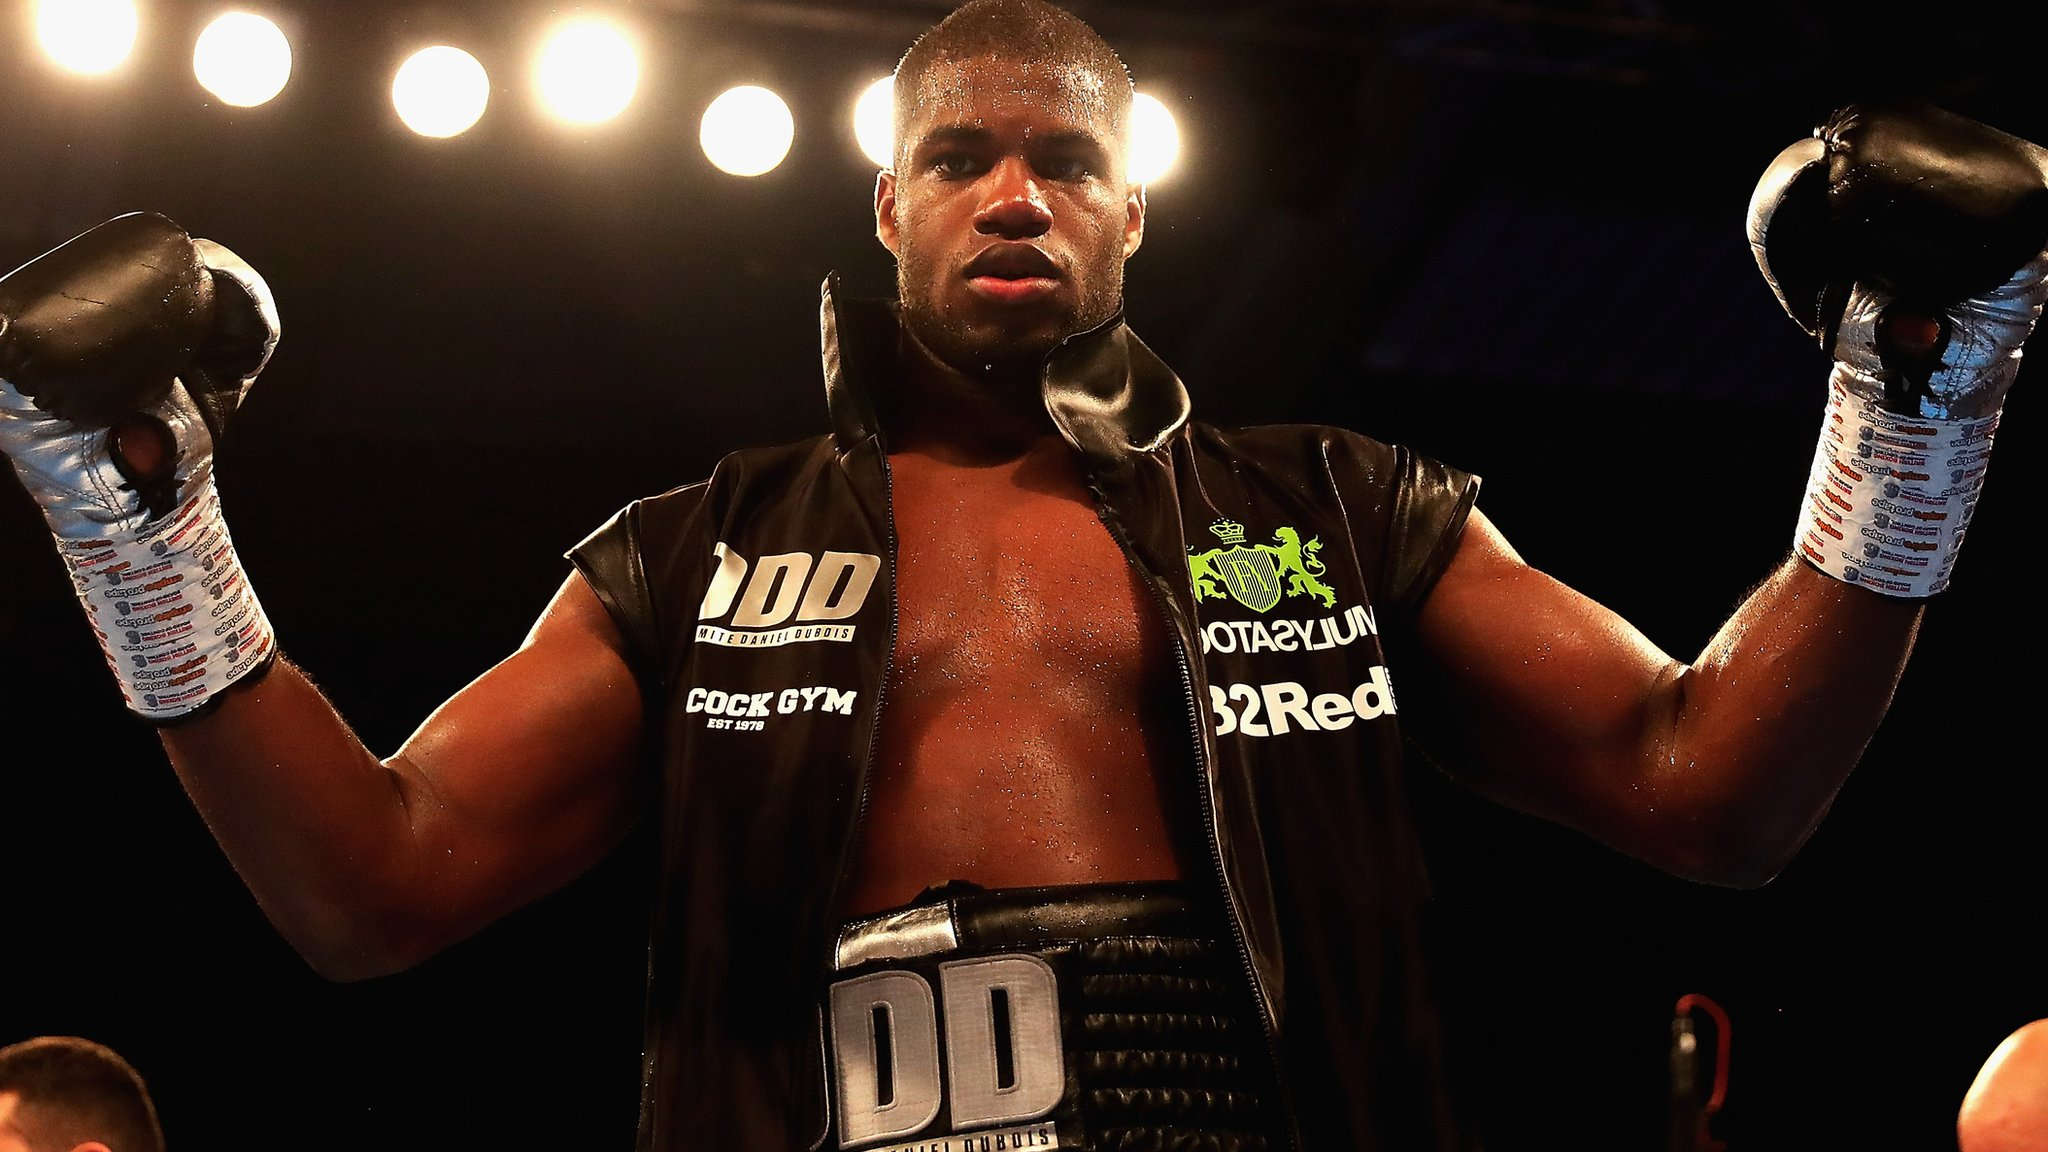 'I'd be on full chickens' - GB's Dubois on his journey to the heavyweight ranks